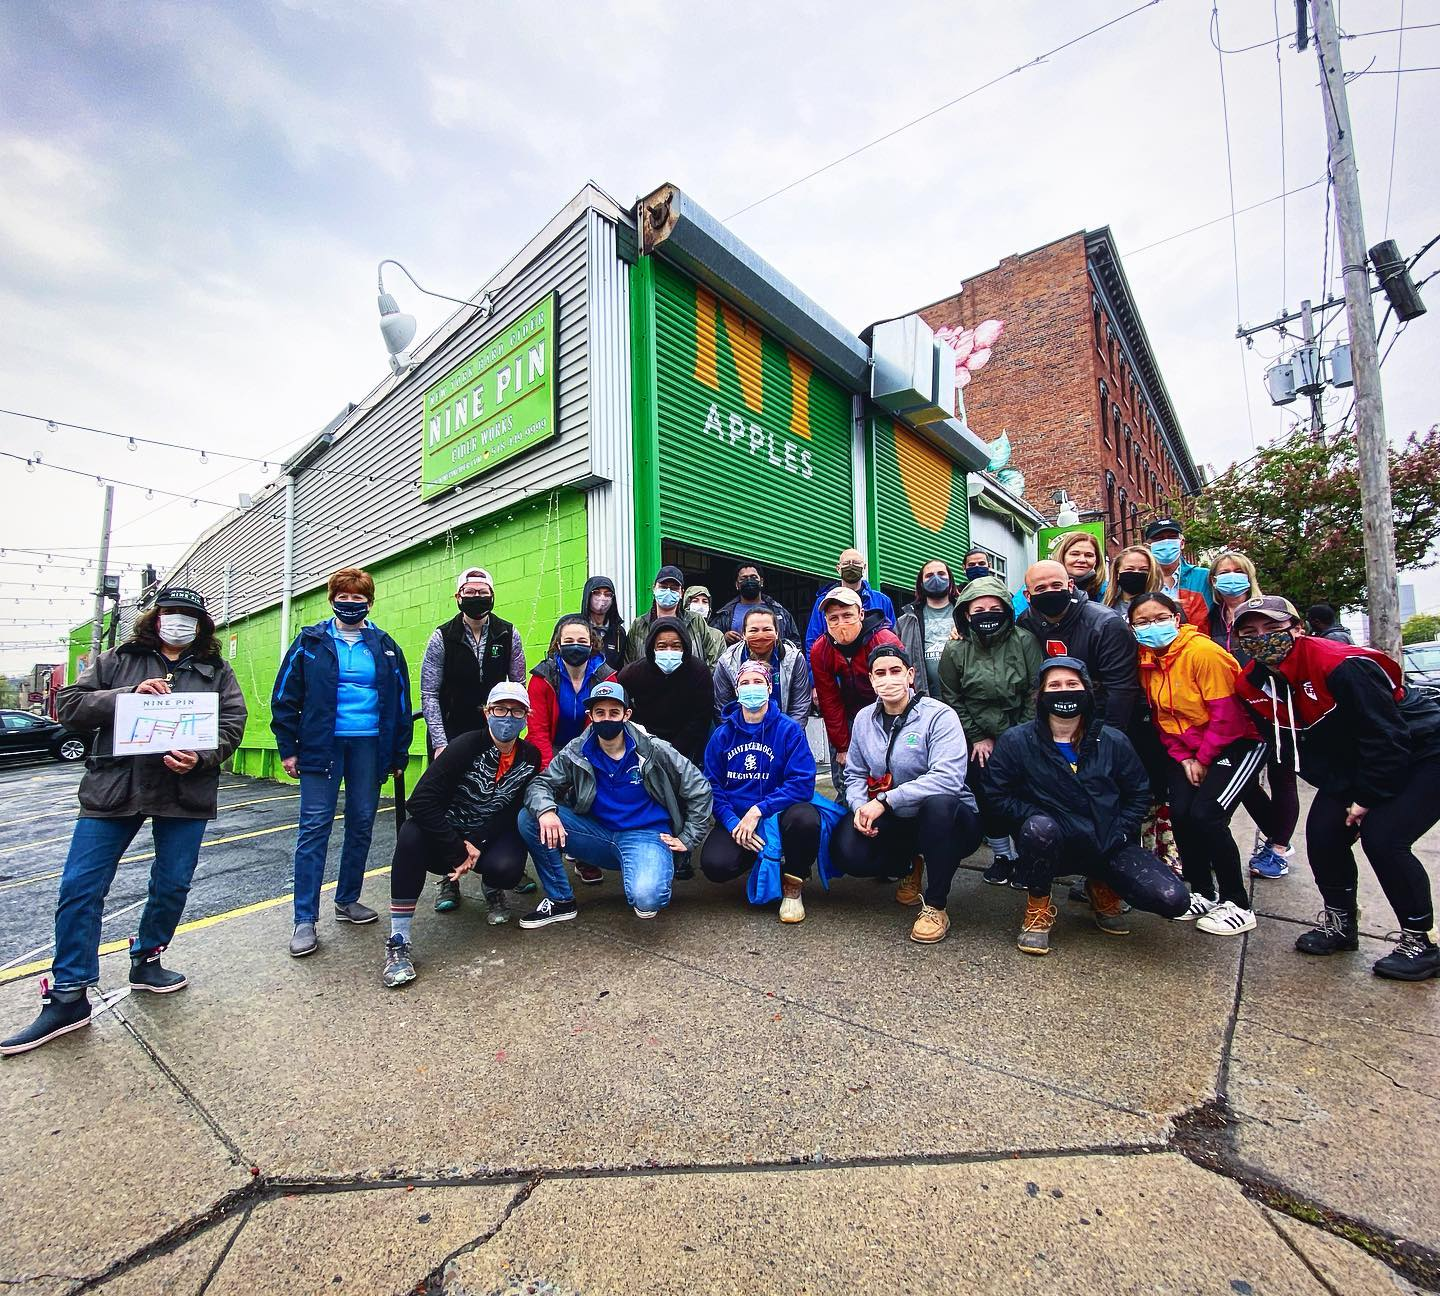 A group of 20 or people posing in front a green warehouse.